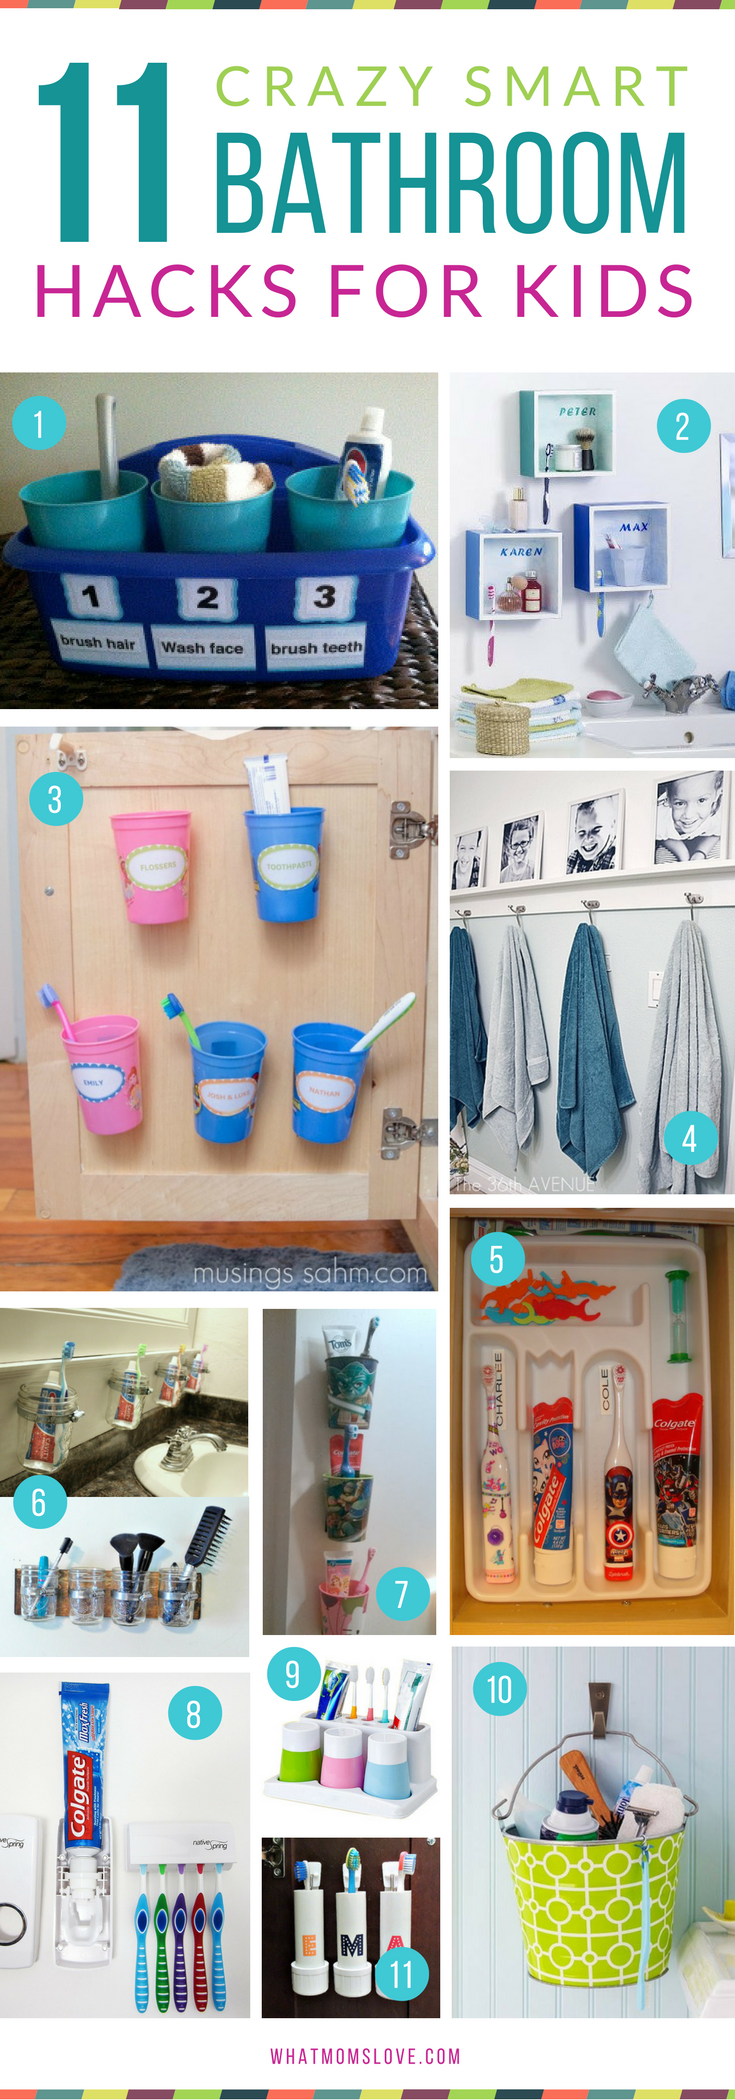 Amazing Kids Bathroom Storage Ideas Part - 4: Genius Hacks For An Organized Bathroom Tips And Tricks For Stress-free  Mornings With Kids - Perfect For Getting Them Into A Back-to-school Routine!